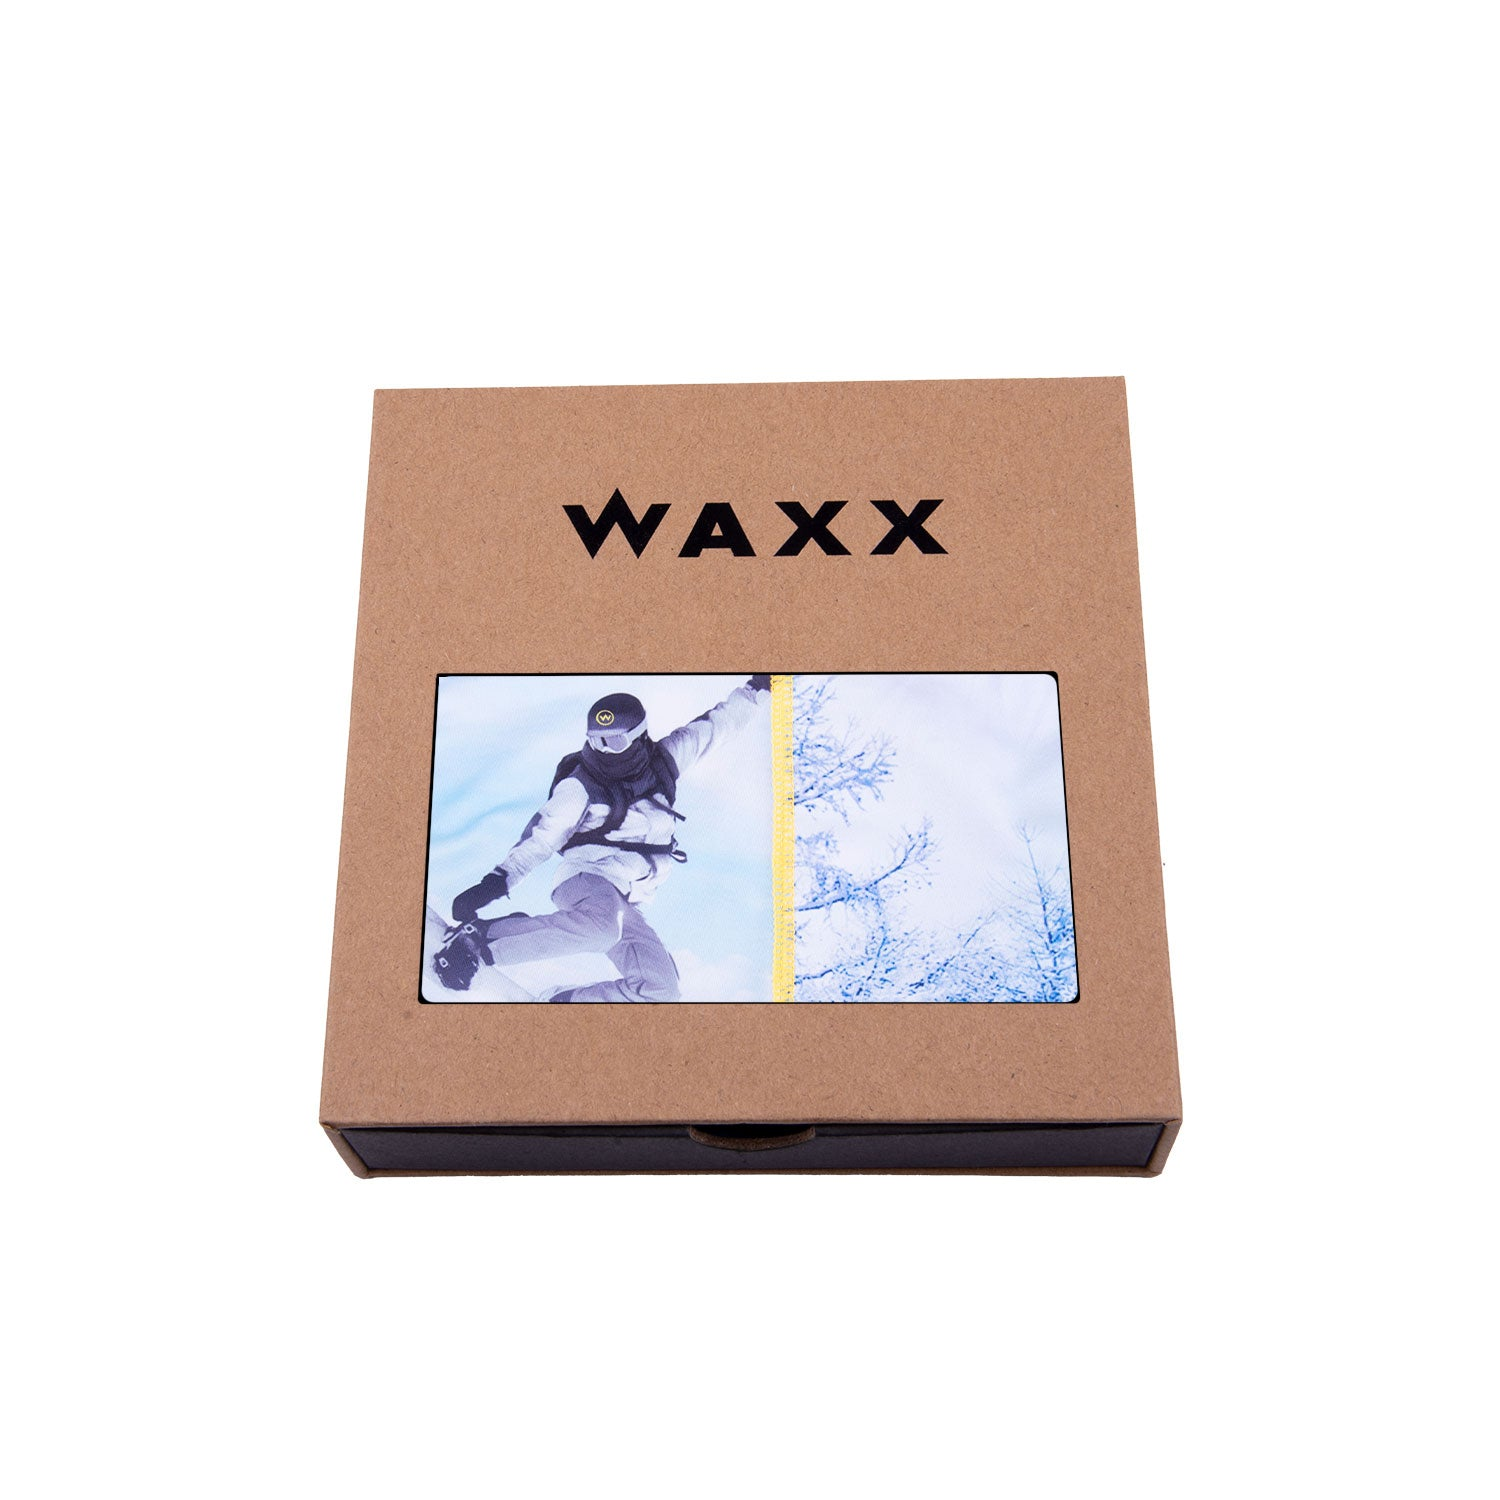 Waxx Men's Trunk Boxer Short Snowboard